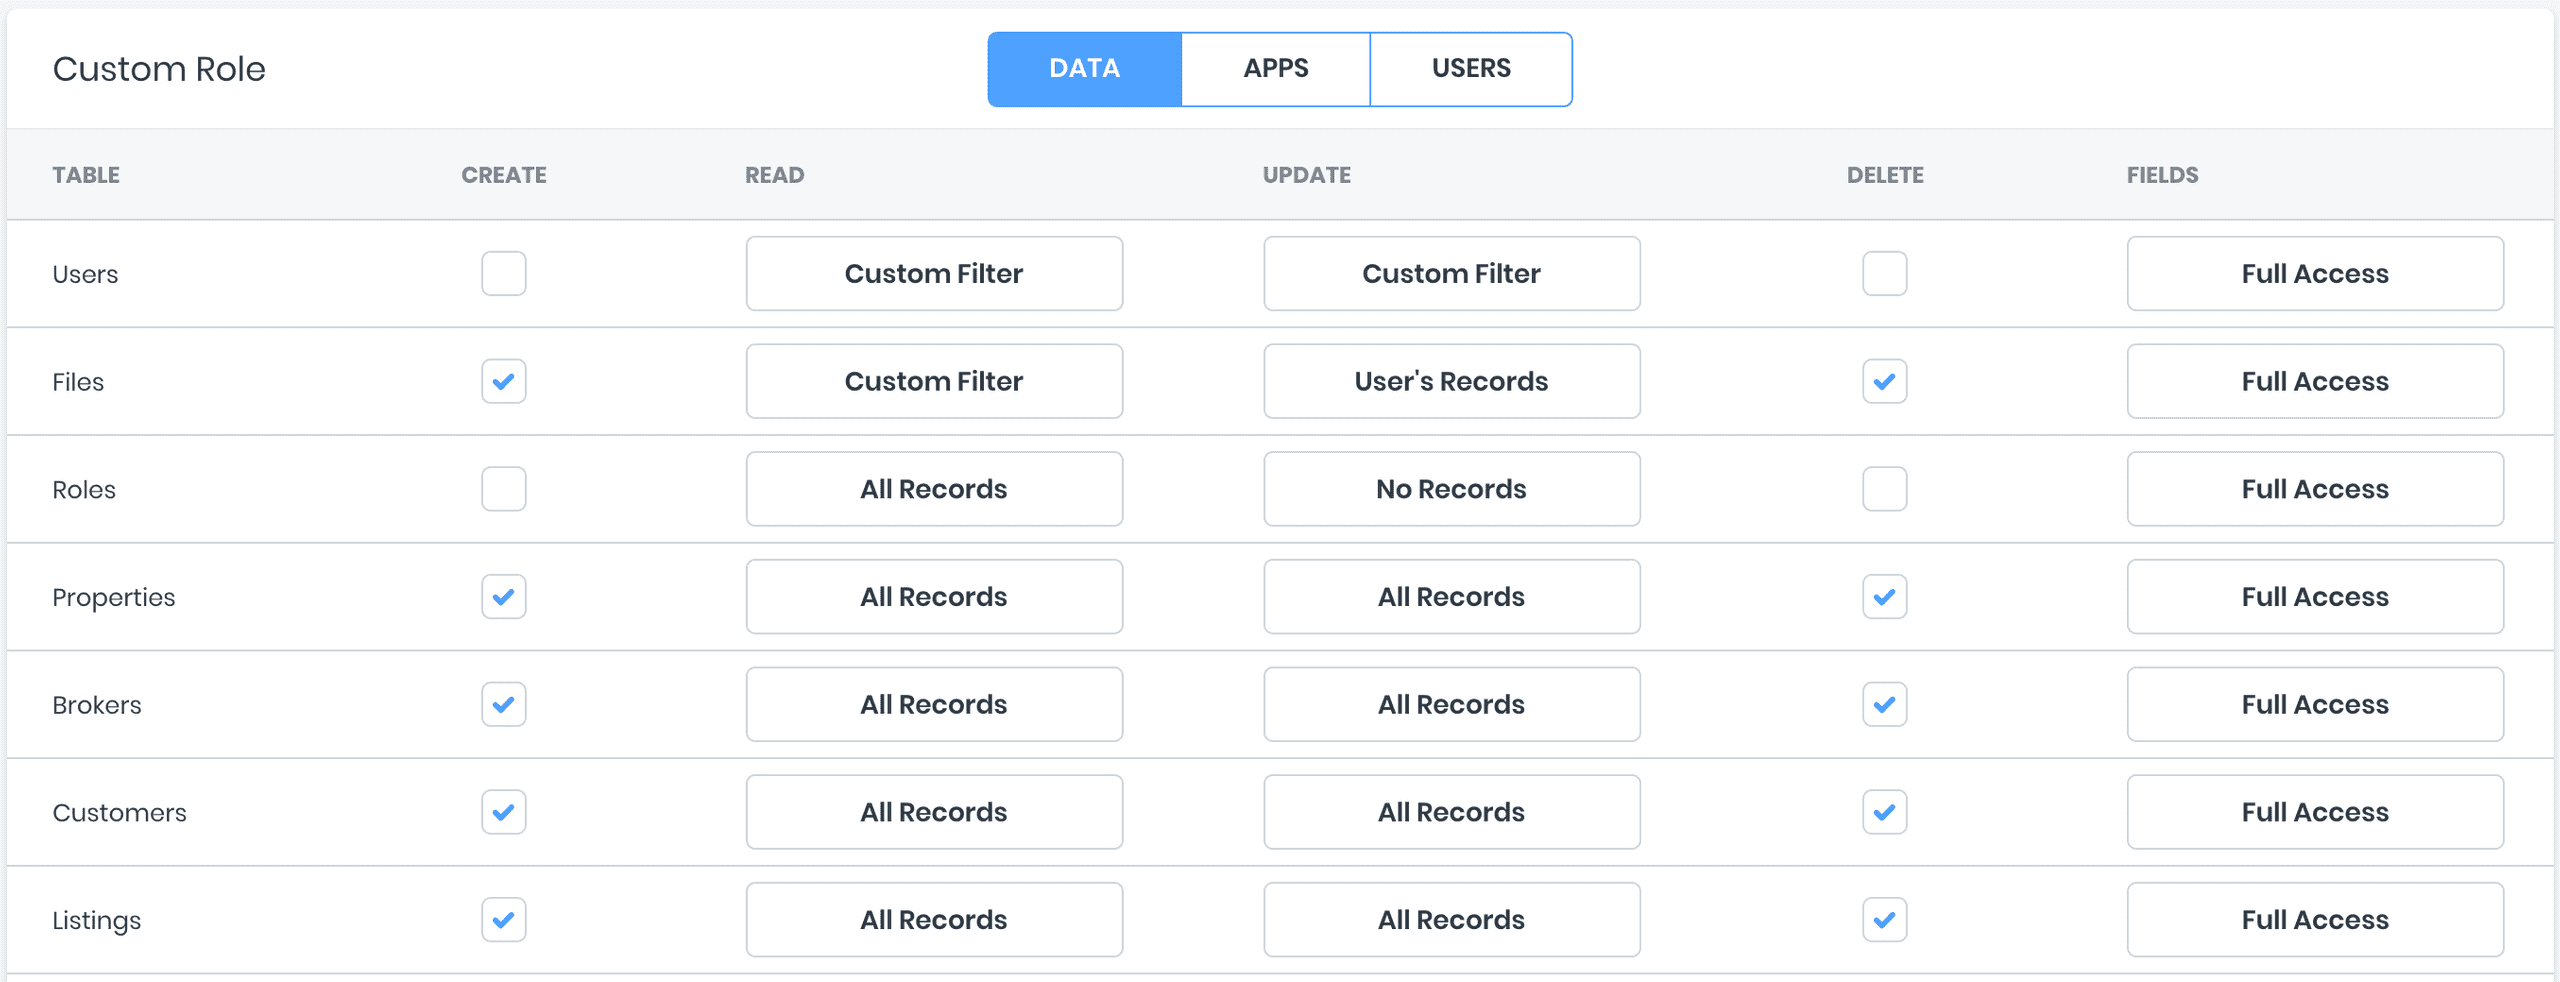 Data permissions in Roles Manager